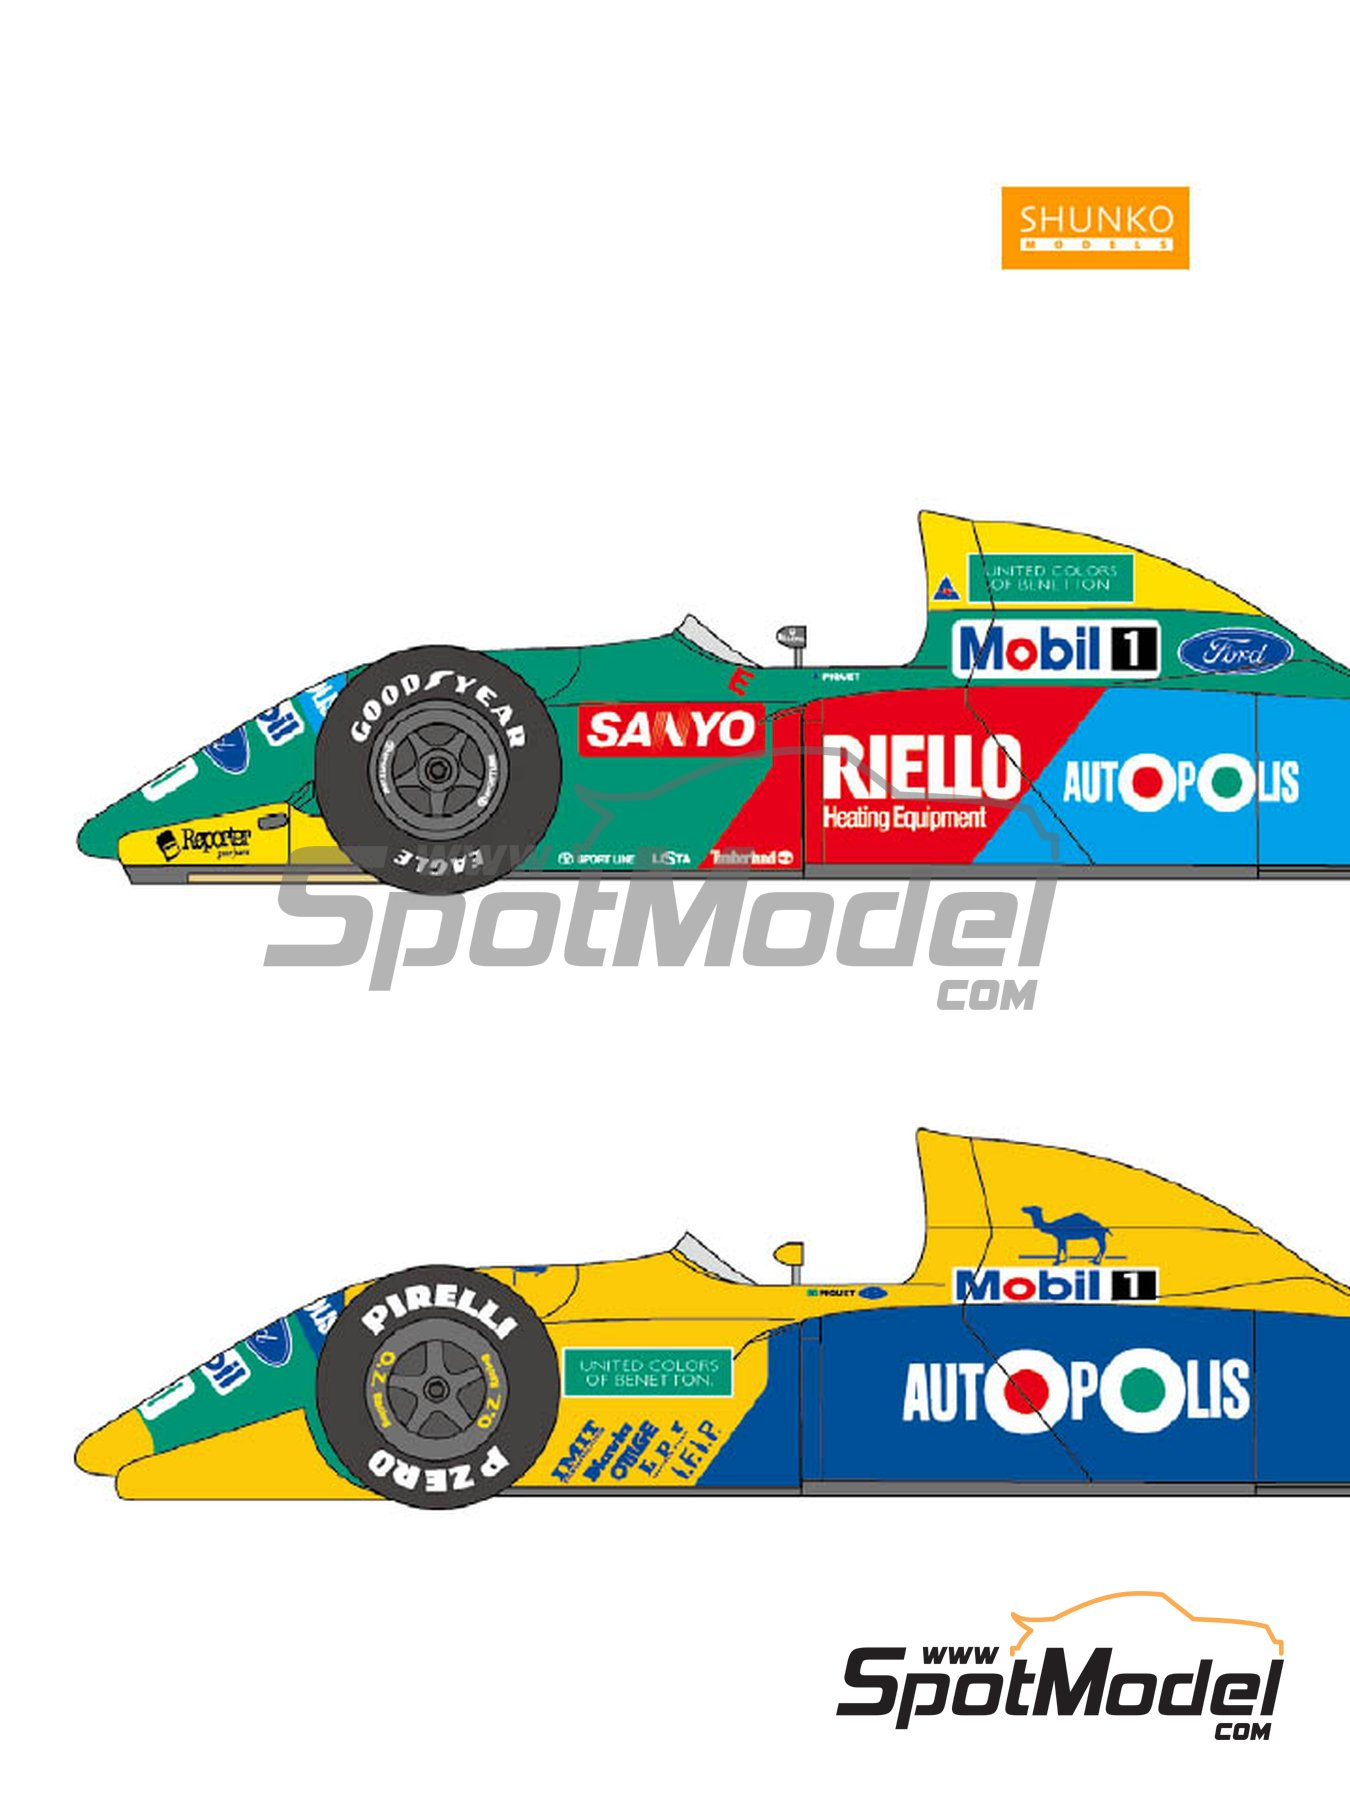 Benetton Ford B190 / B190B Autopolis Camel - Japanese Formula 1 Grand Prix, USA Formula 1 Grand Prix 1990 | Marking / livery in 1/24 scale manufactured by Shunko Models (ref. SHK-D180) image